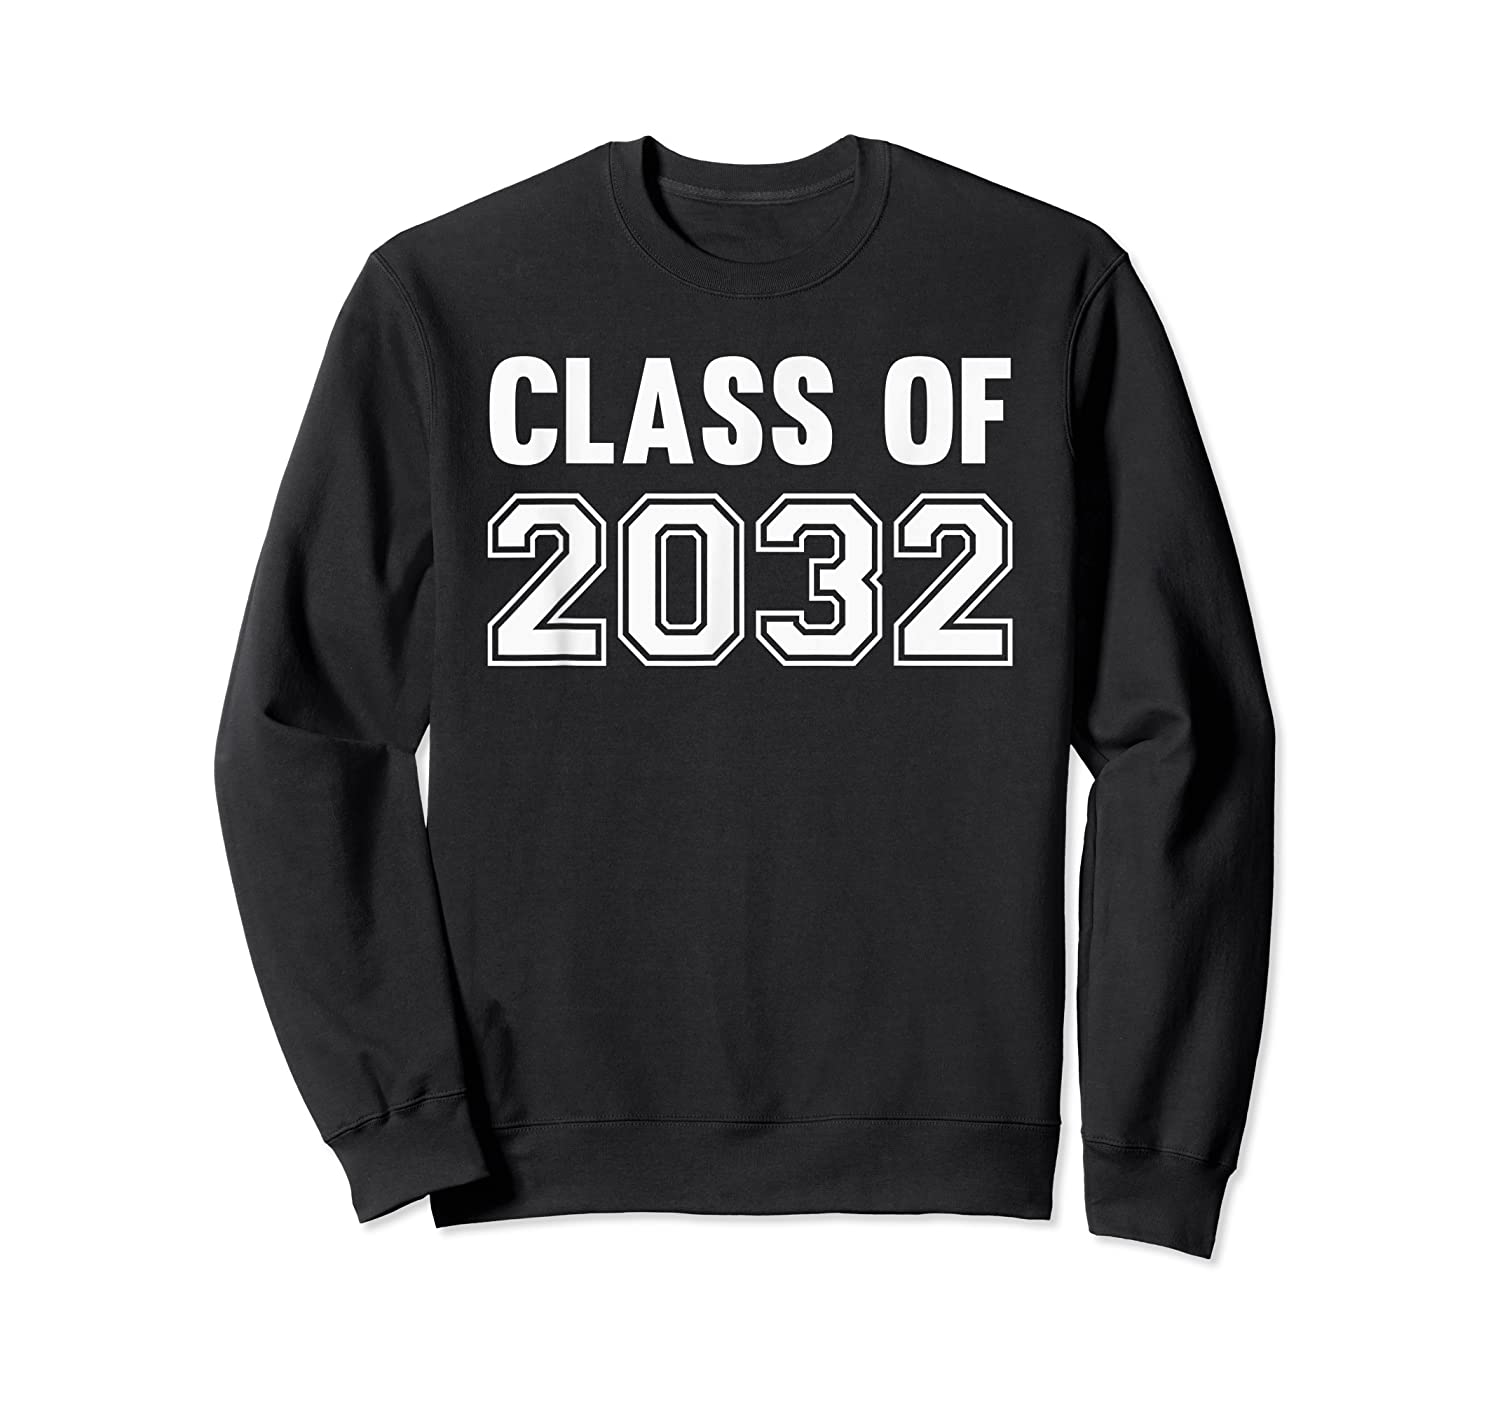 Class Of 2031 Grow With Me First Day Of School Shirts Crewneck Sweater